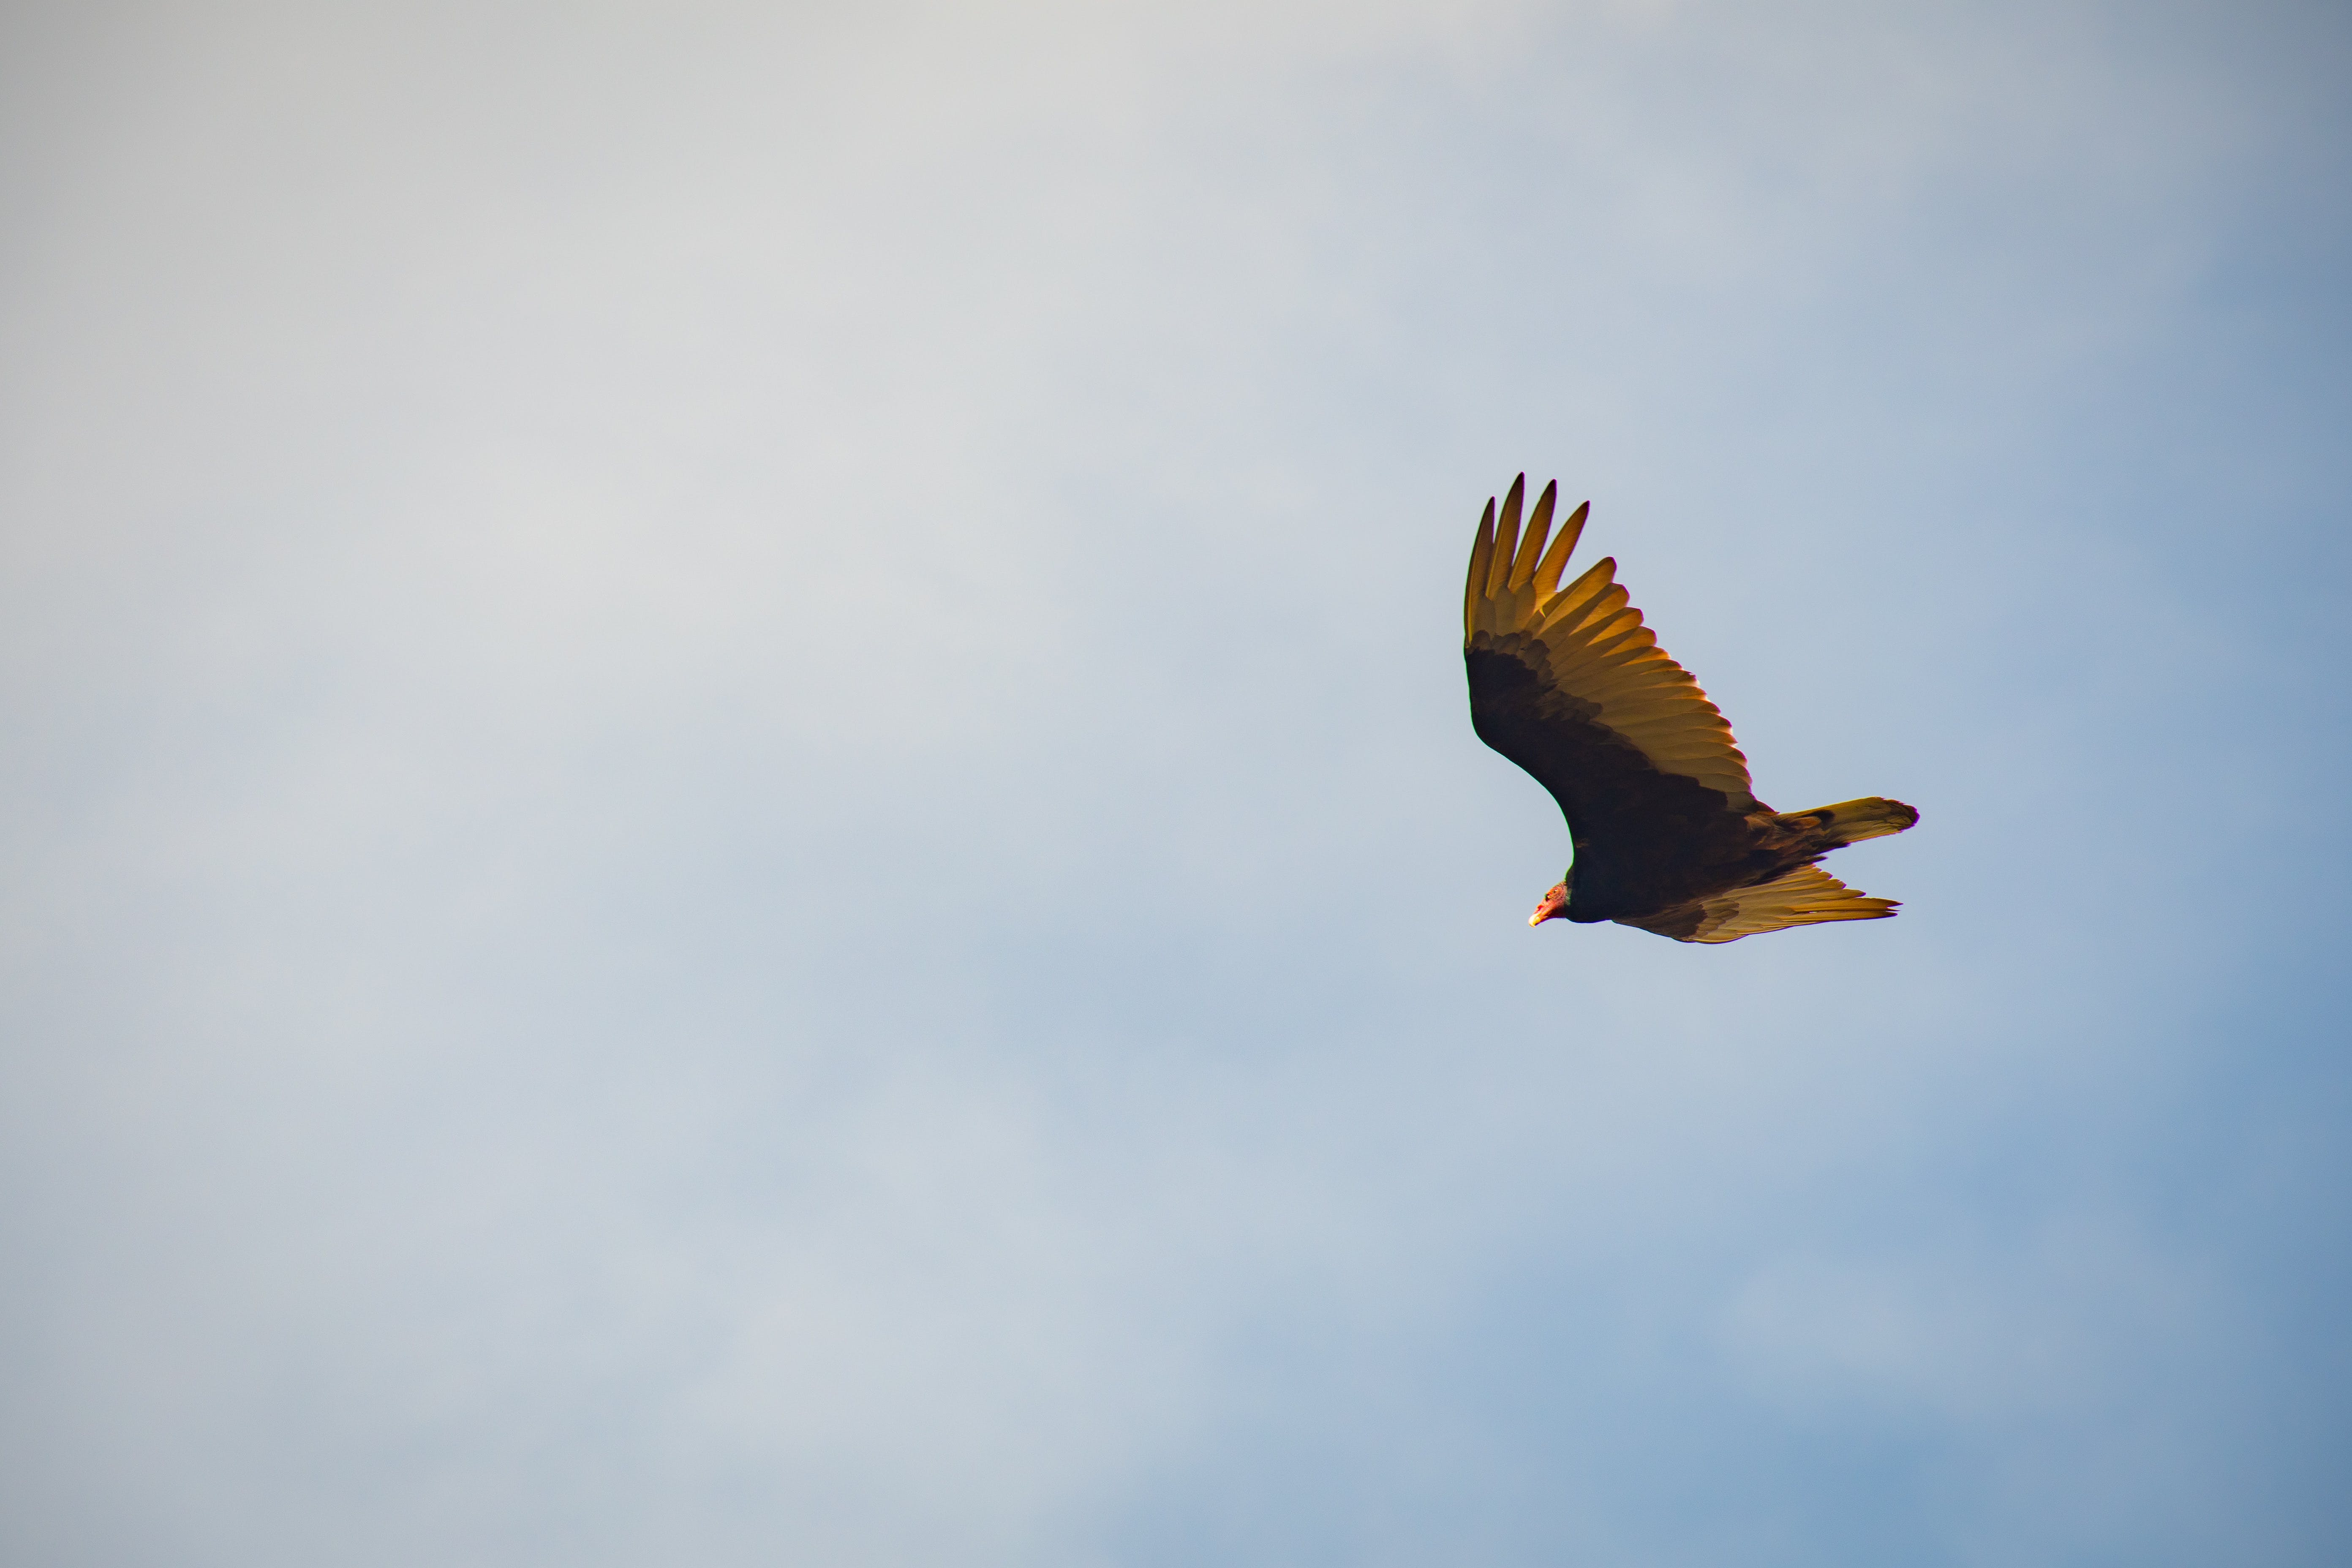 Black and Yellow Bird Flying